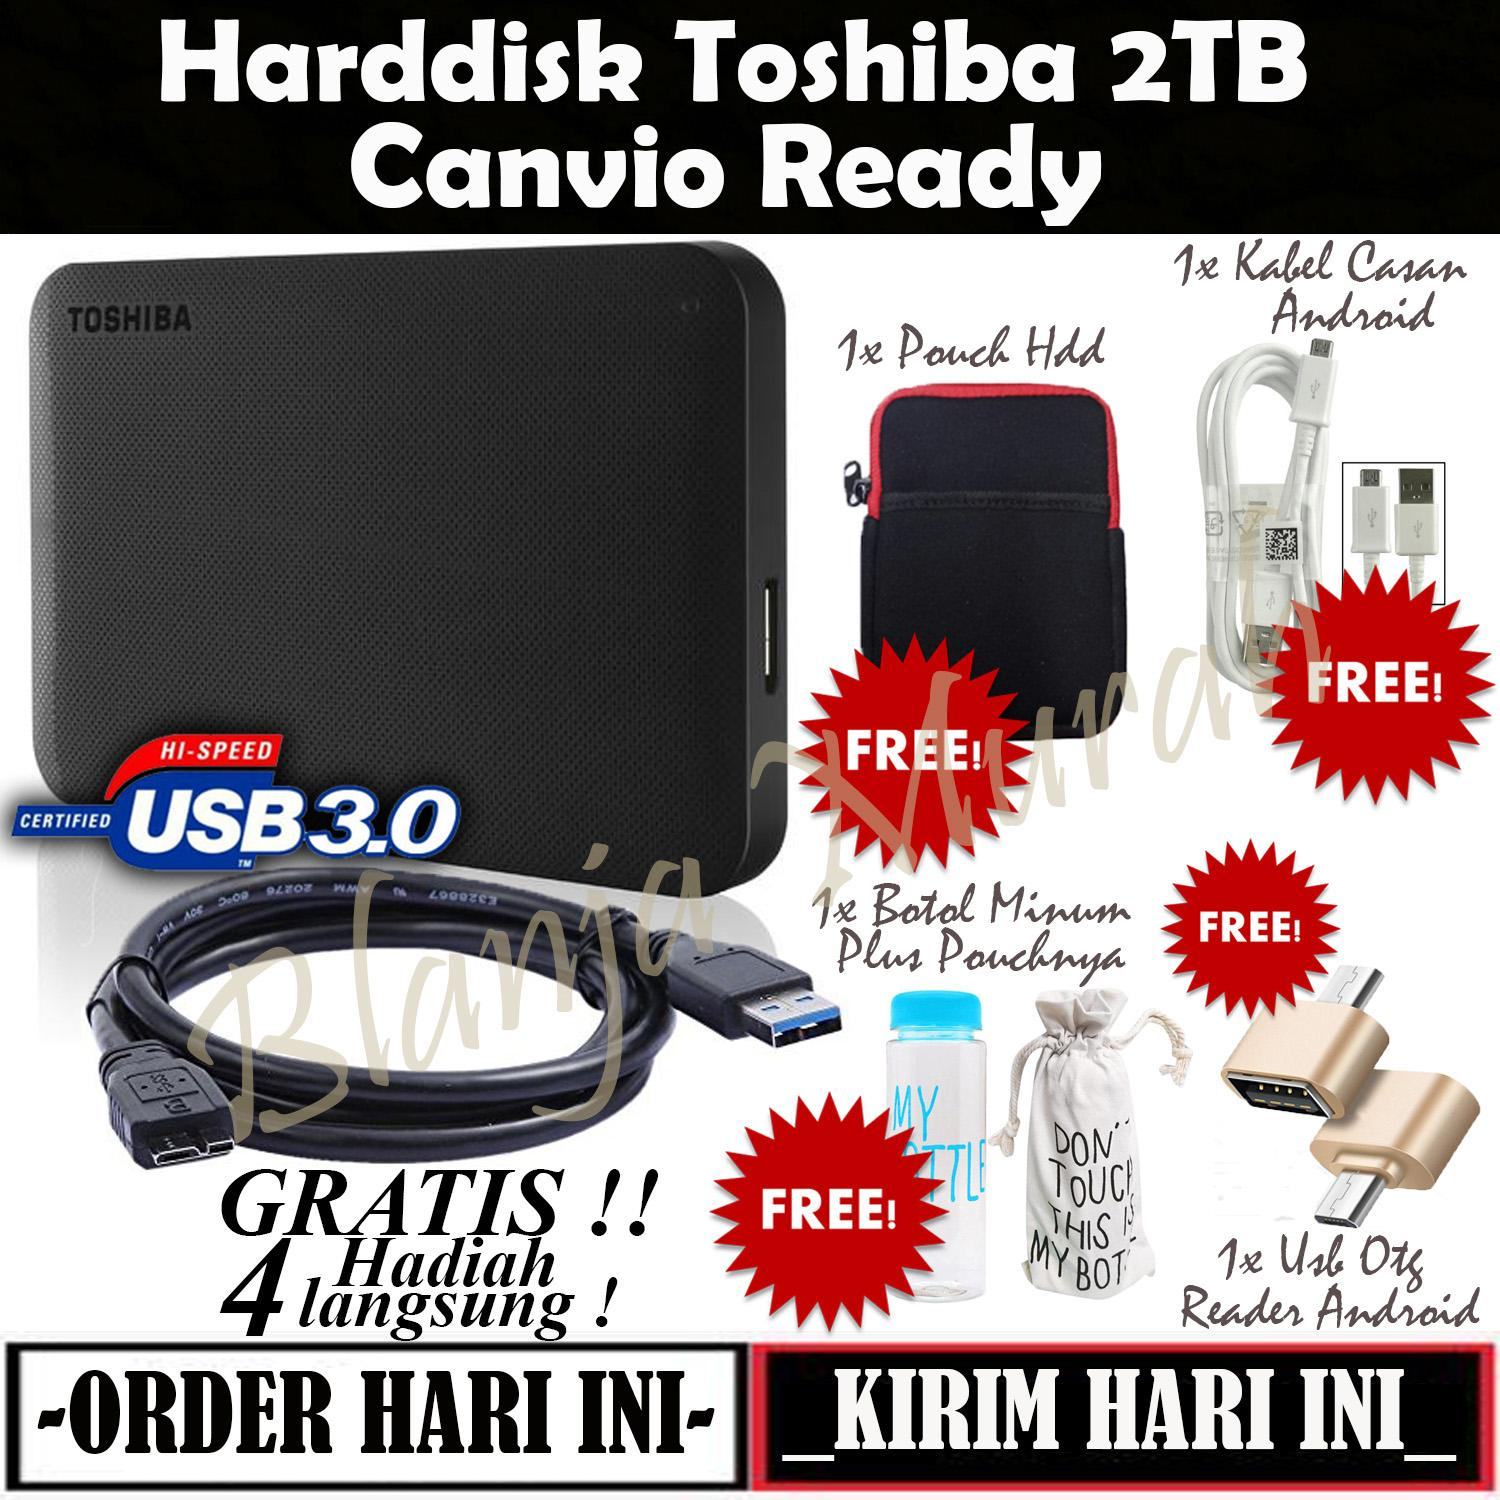 https://www.lazada.co.id/products/toshiba-canvio-ready-2tb-hdd-hd-hardisk-eksternal-black-gratis-pouch-harddisk-botol-air-minum-500ml-plus-sarung-botol-usb-otg-reader-android-dan-kabel-casan-android-i143015410-s156497714.html